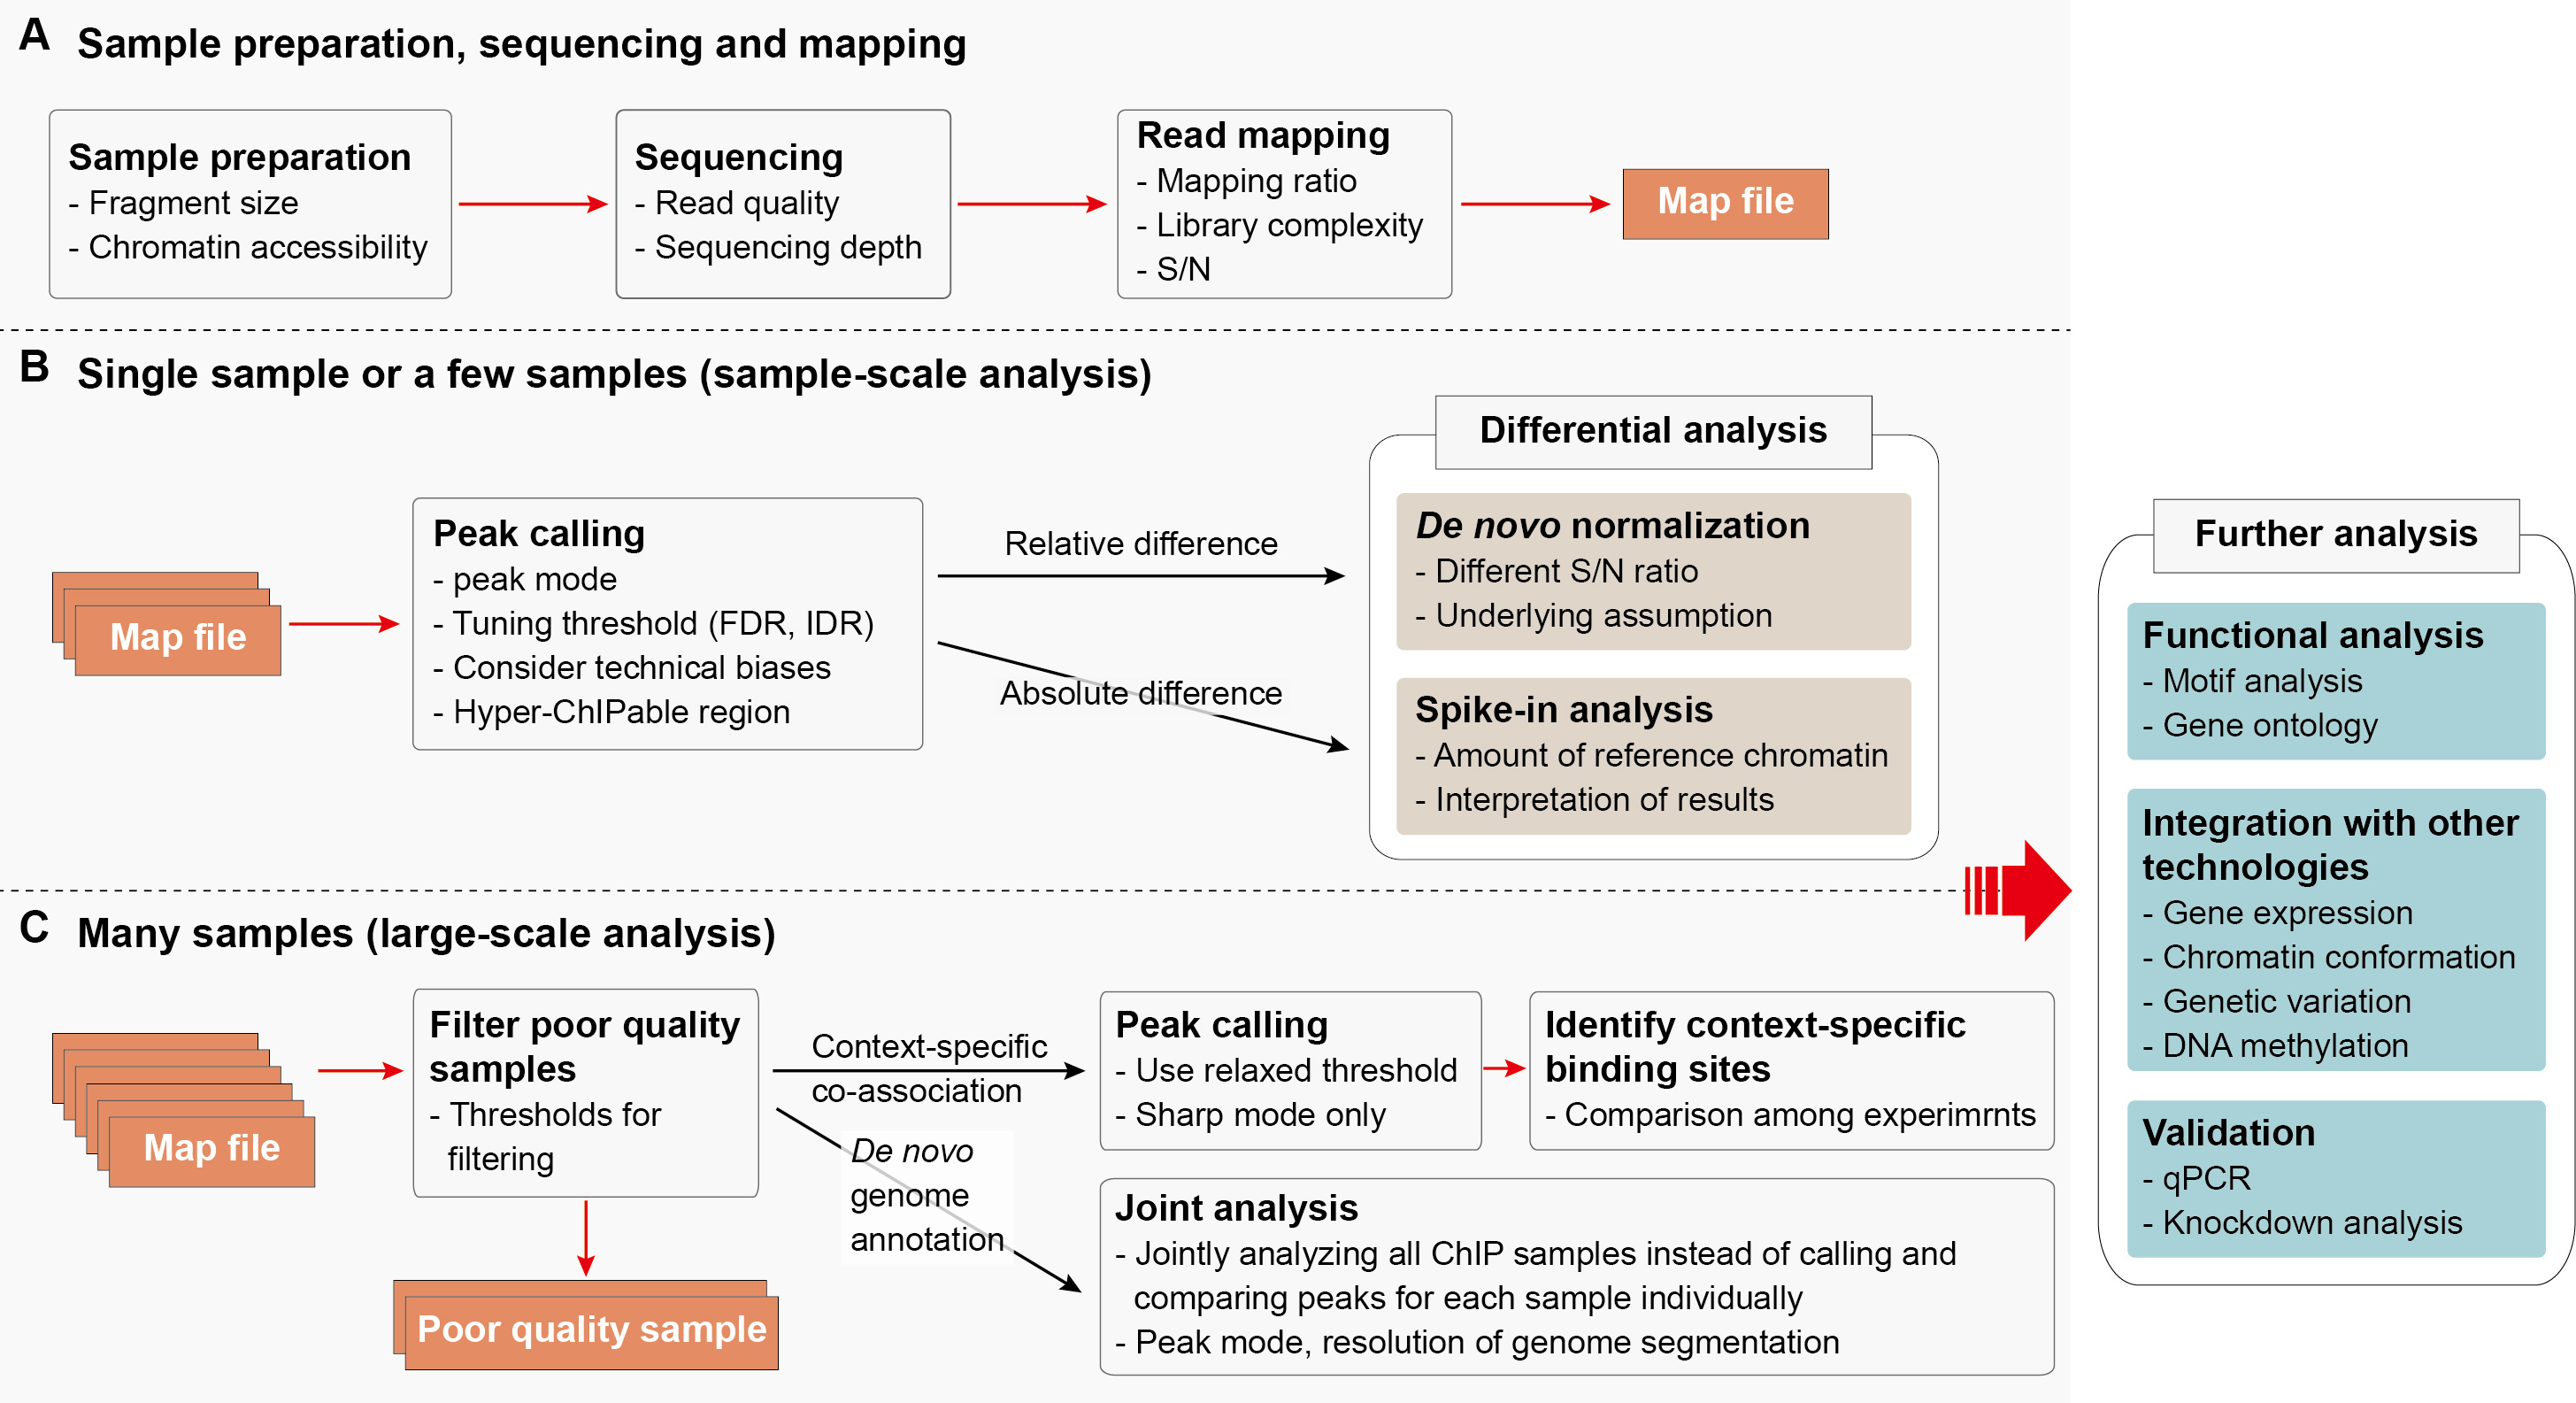 Pipeline and Tools Comparison for ChIP-Seq Analysis